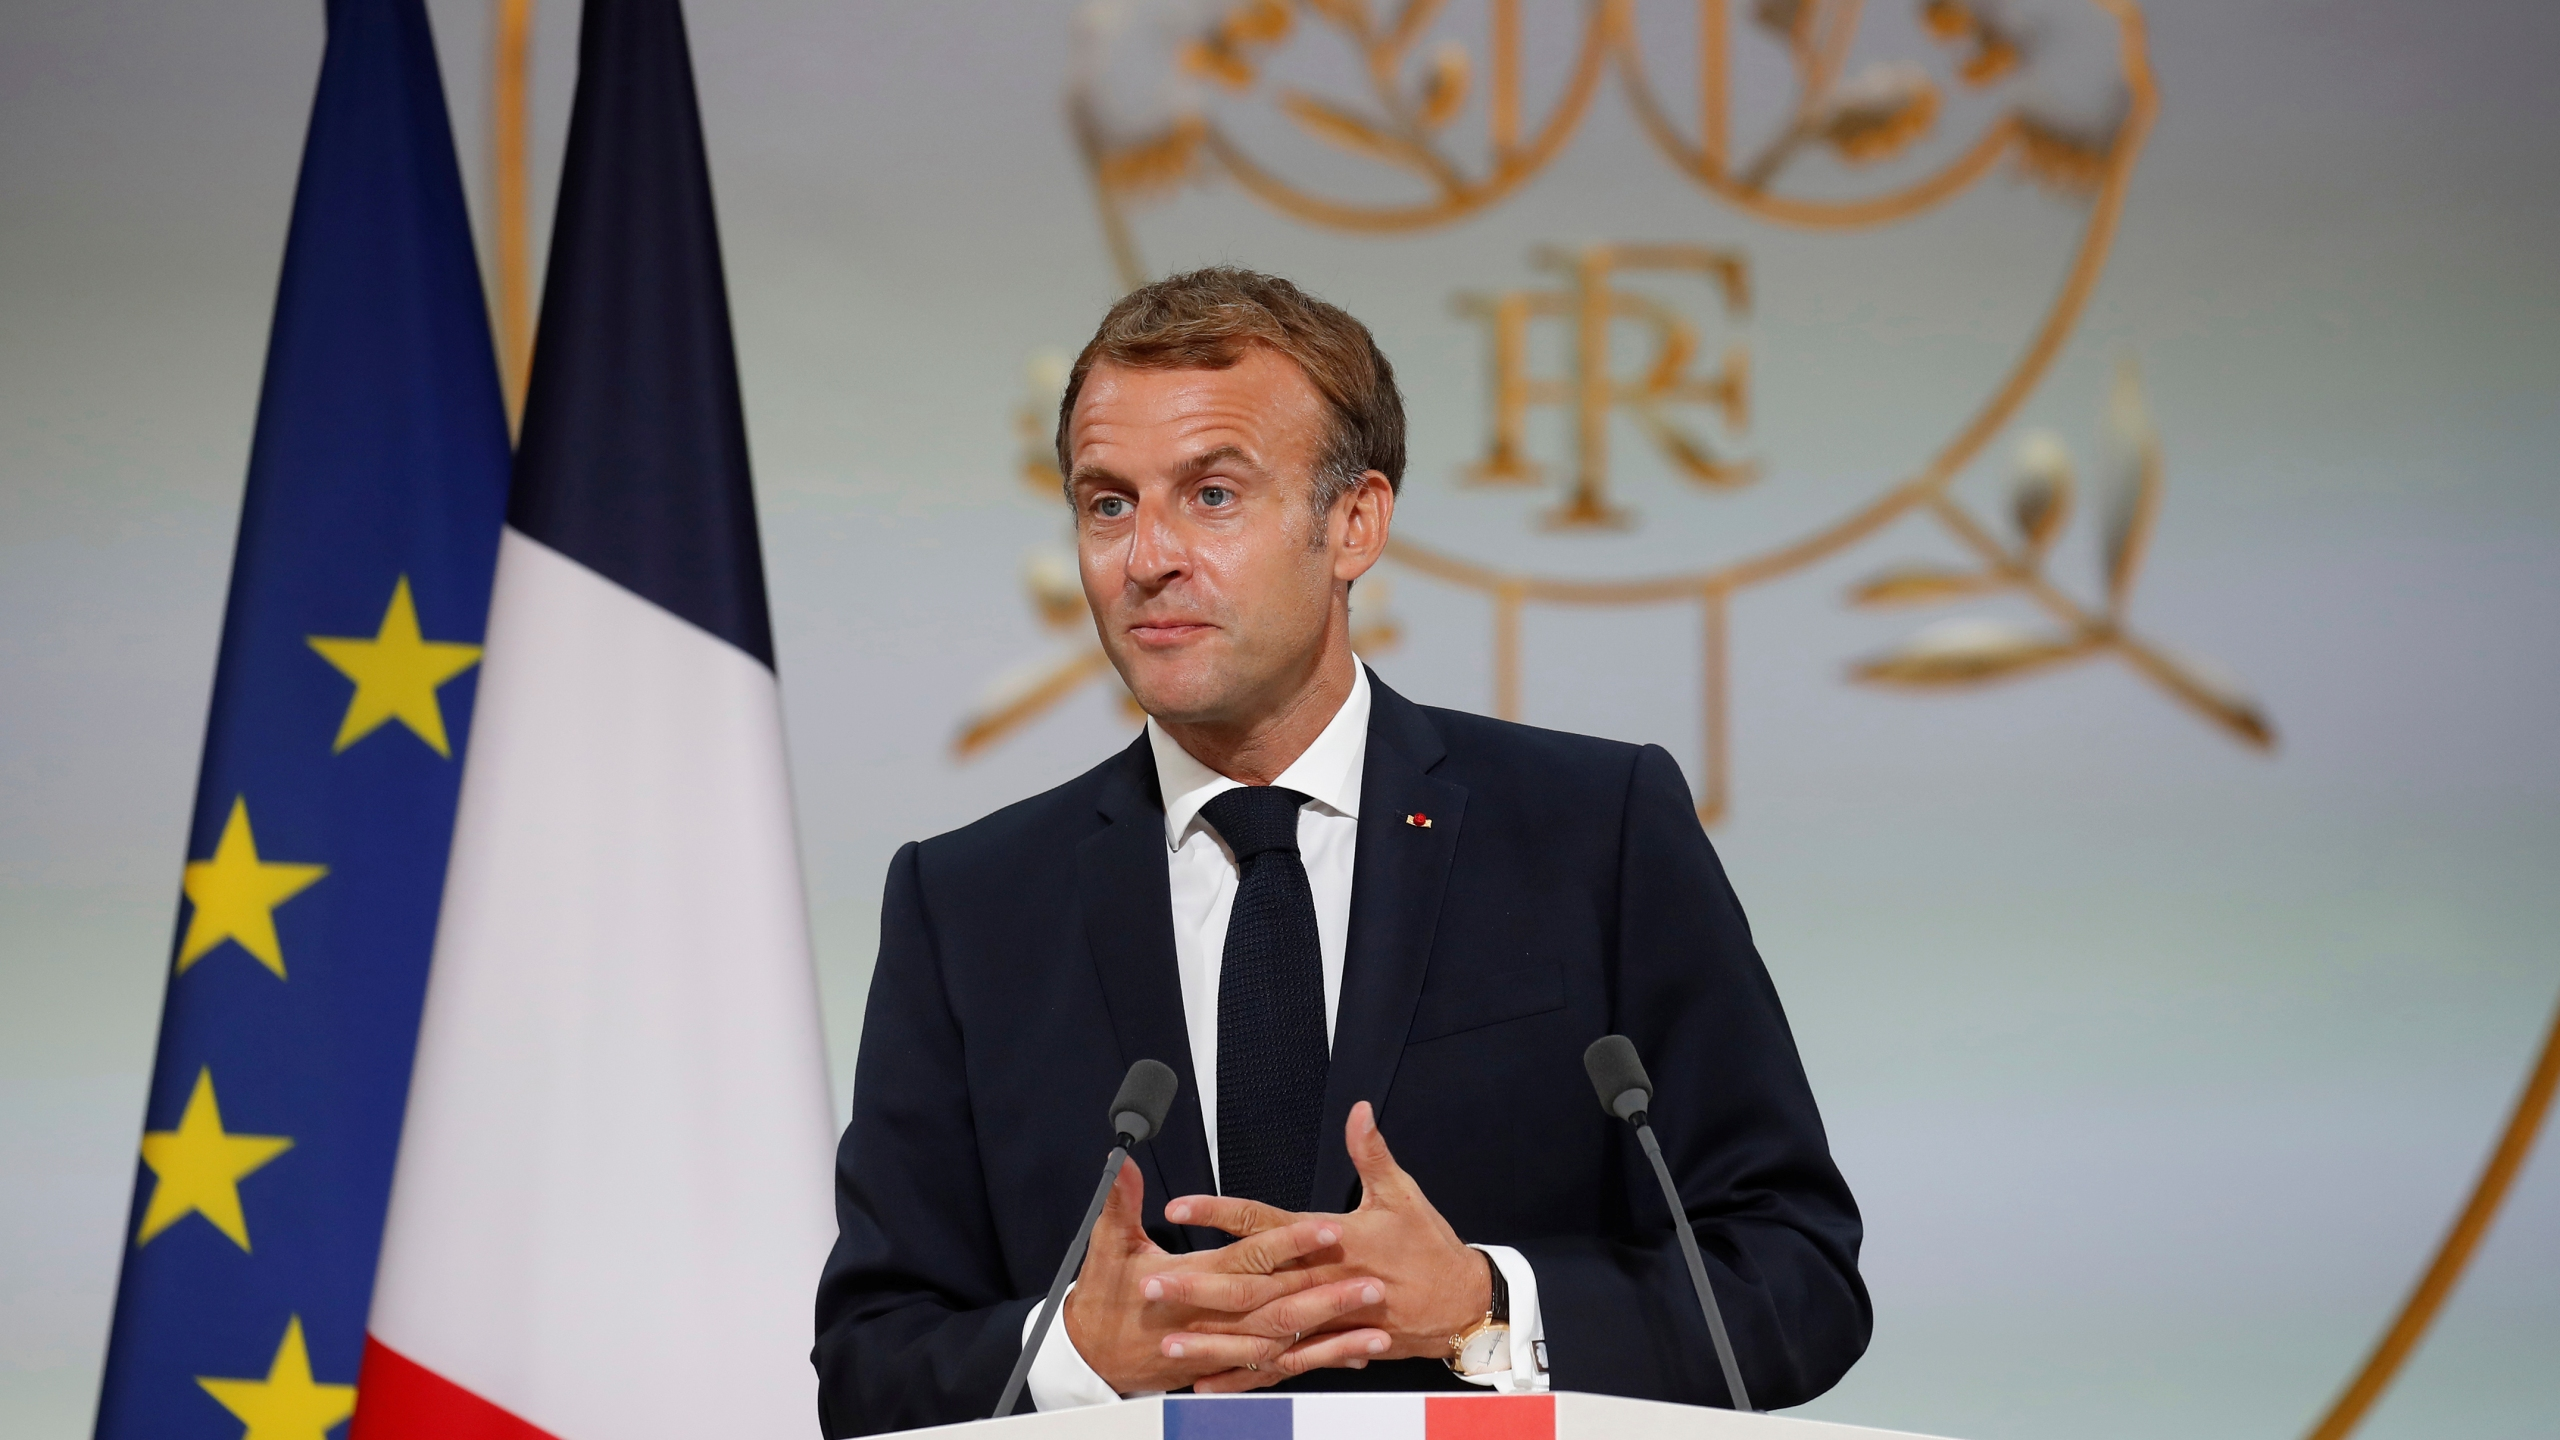 French President Macron hosts a ceremony in homage to the Harkis at the Elysee Palace in Paris